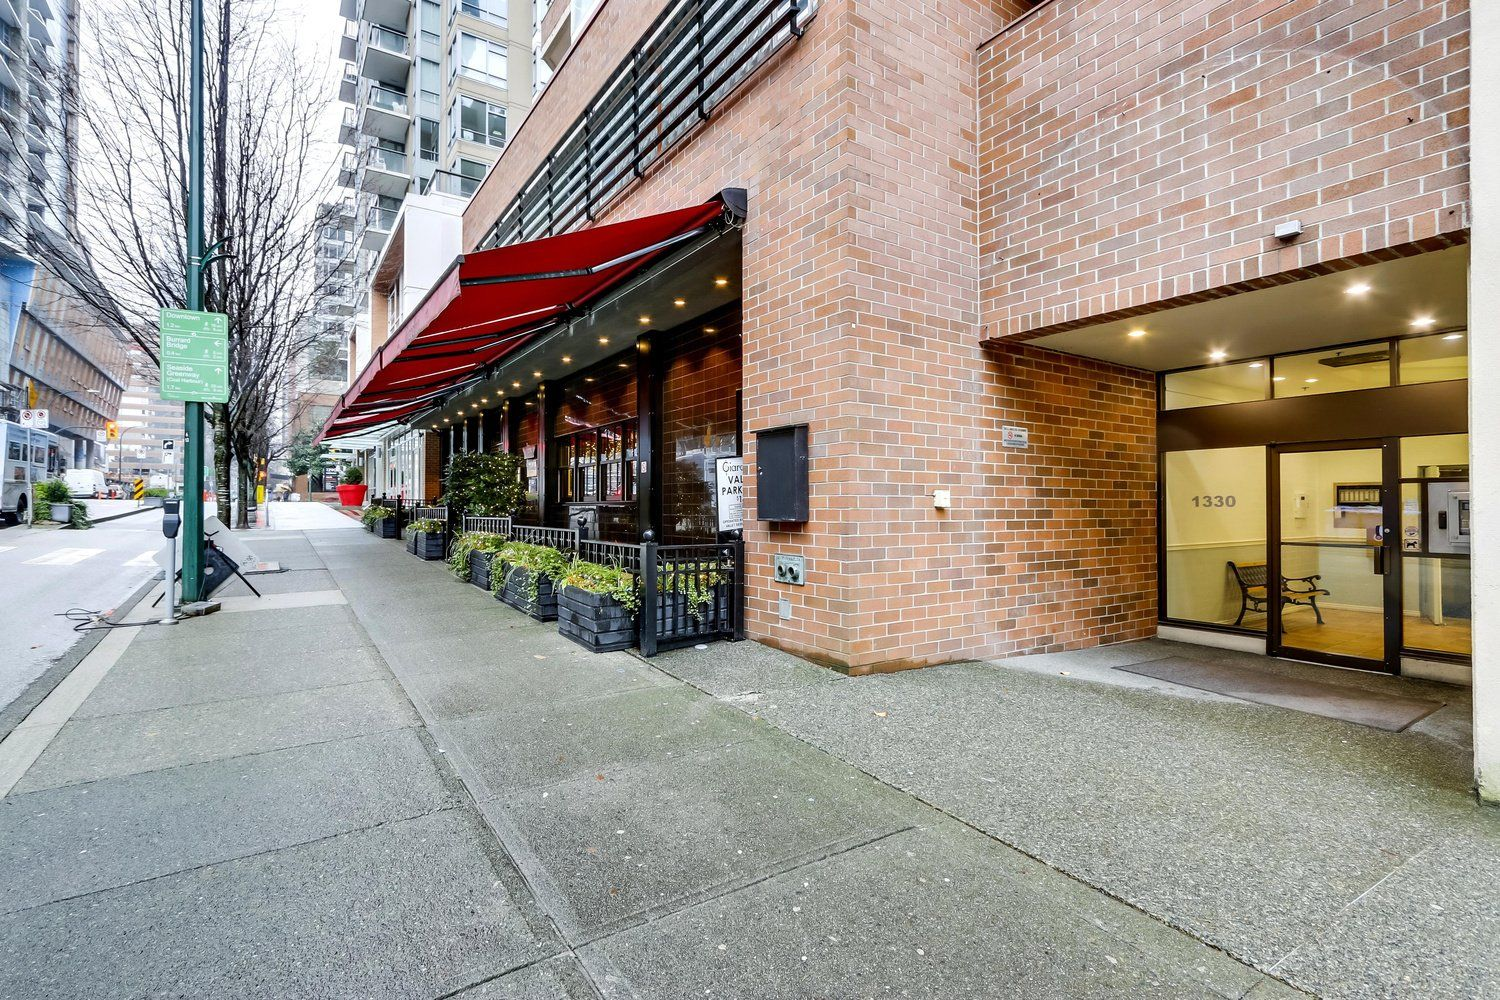 """Main Photo: 407 1330 HORNBY Street in Vancouver: Downtown VW Condo for sale in """"HORNBY COURT"""" (Vancouver West)  : MLS®# R2522576"""